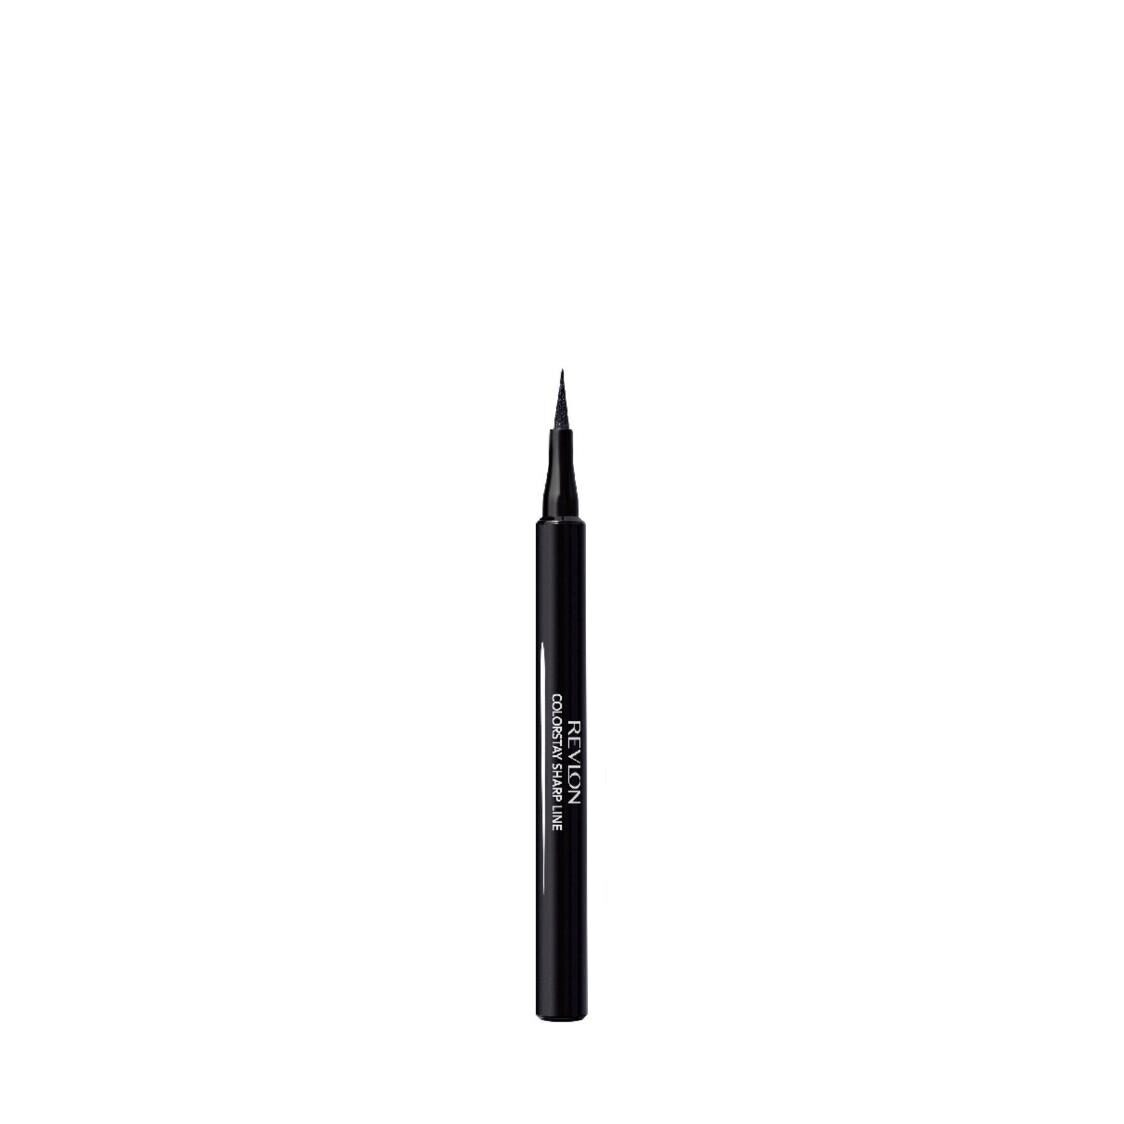 Colourstay Liquid Eye Pen